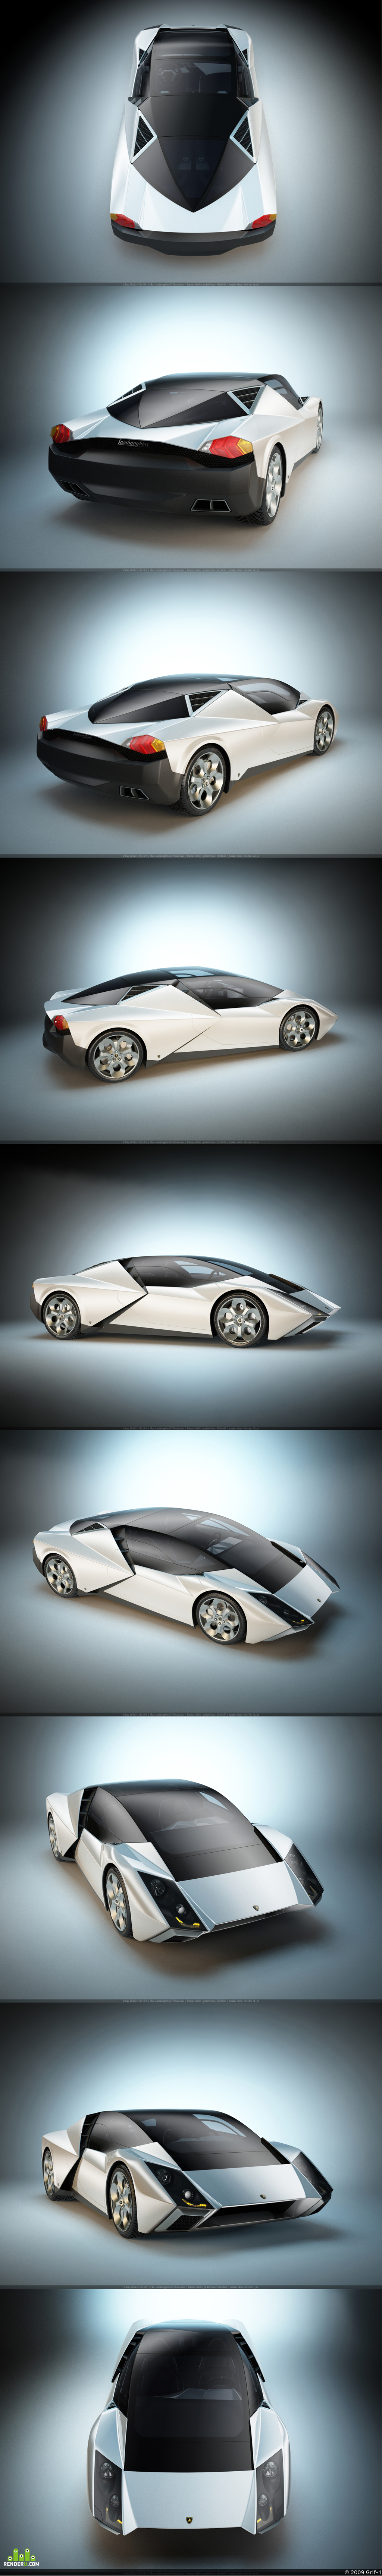 preview Lamborghini Rejoncillo (Gallardo next gen.)